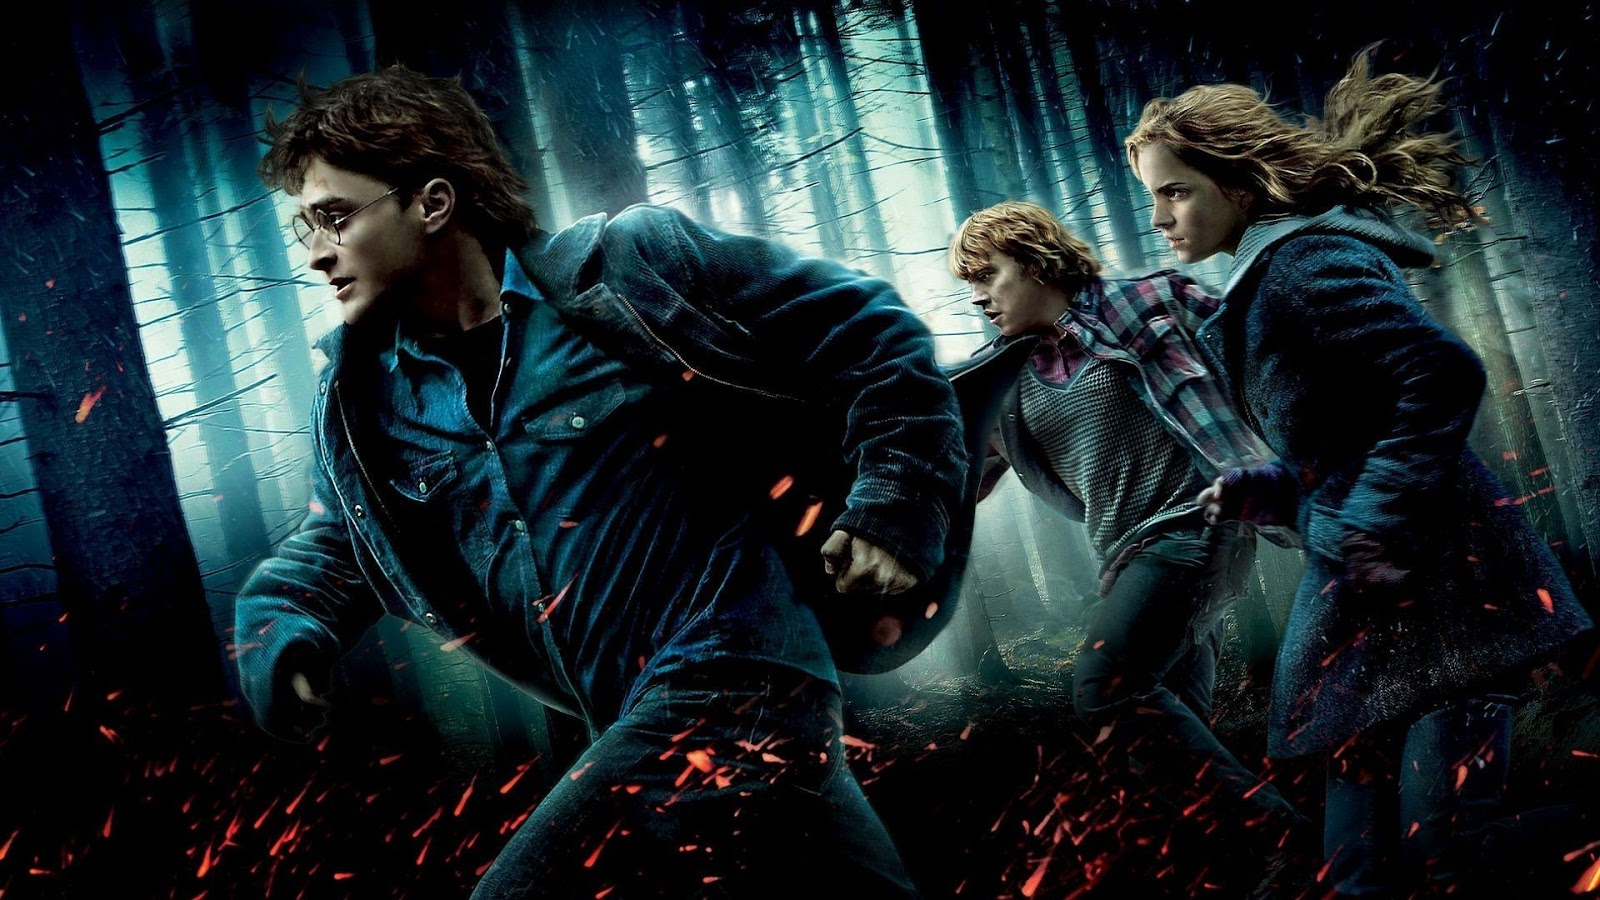 Harry Potter and the Deathly Hallows HD Stills